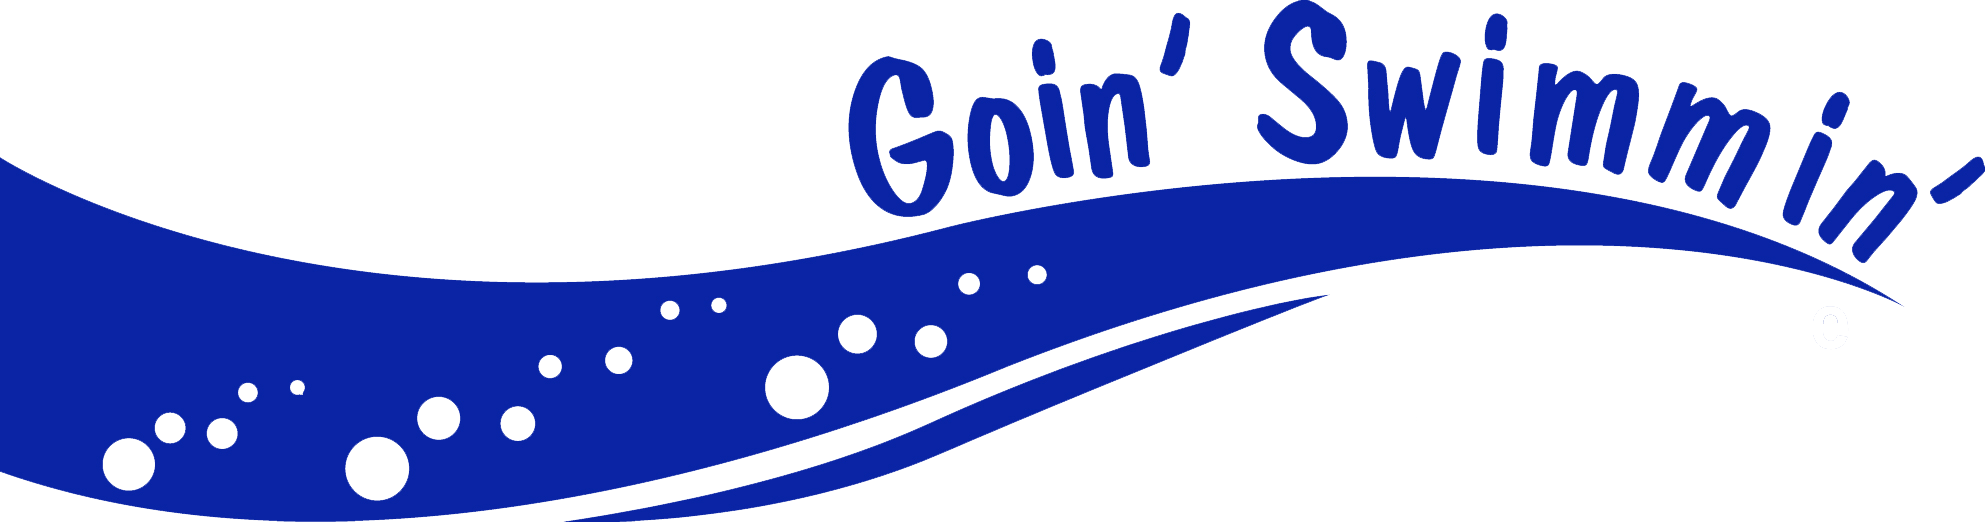 Colored Goin Swimmin logo